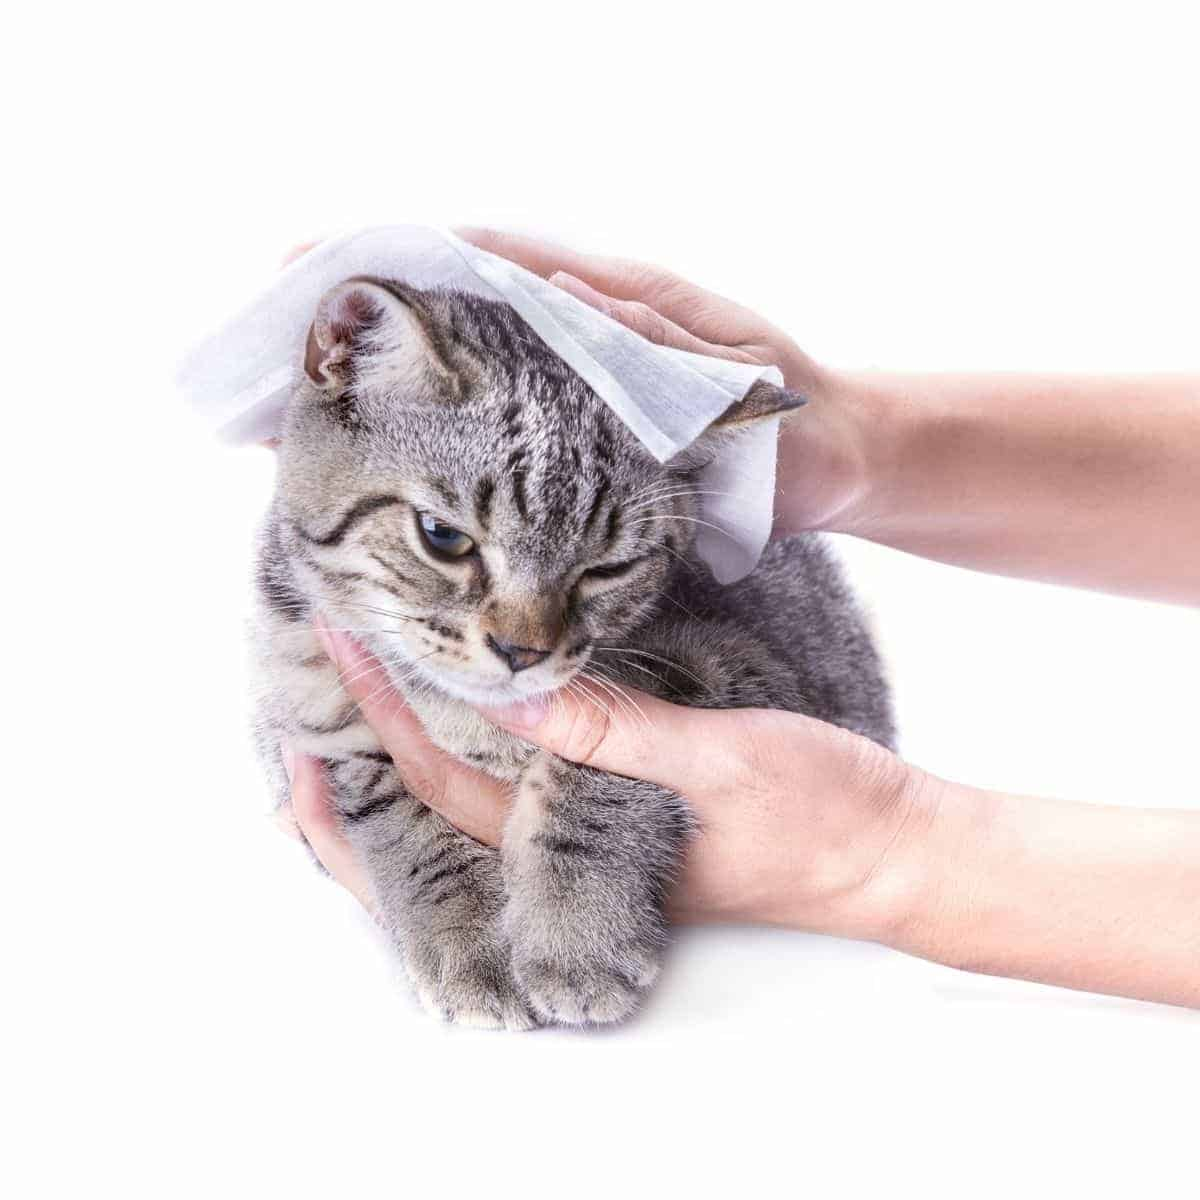 Close-up of hands holding and wiping a cat.